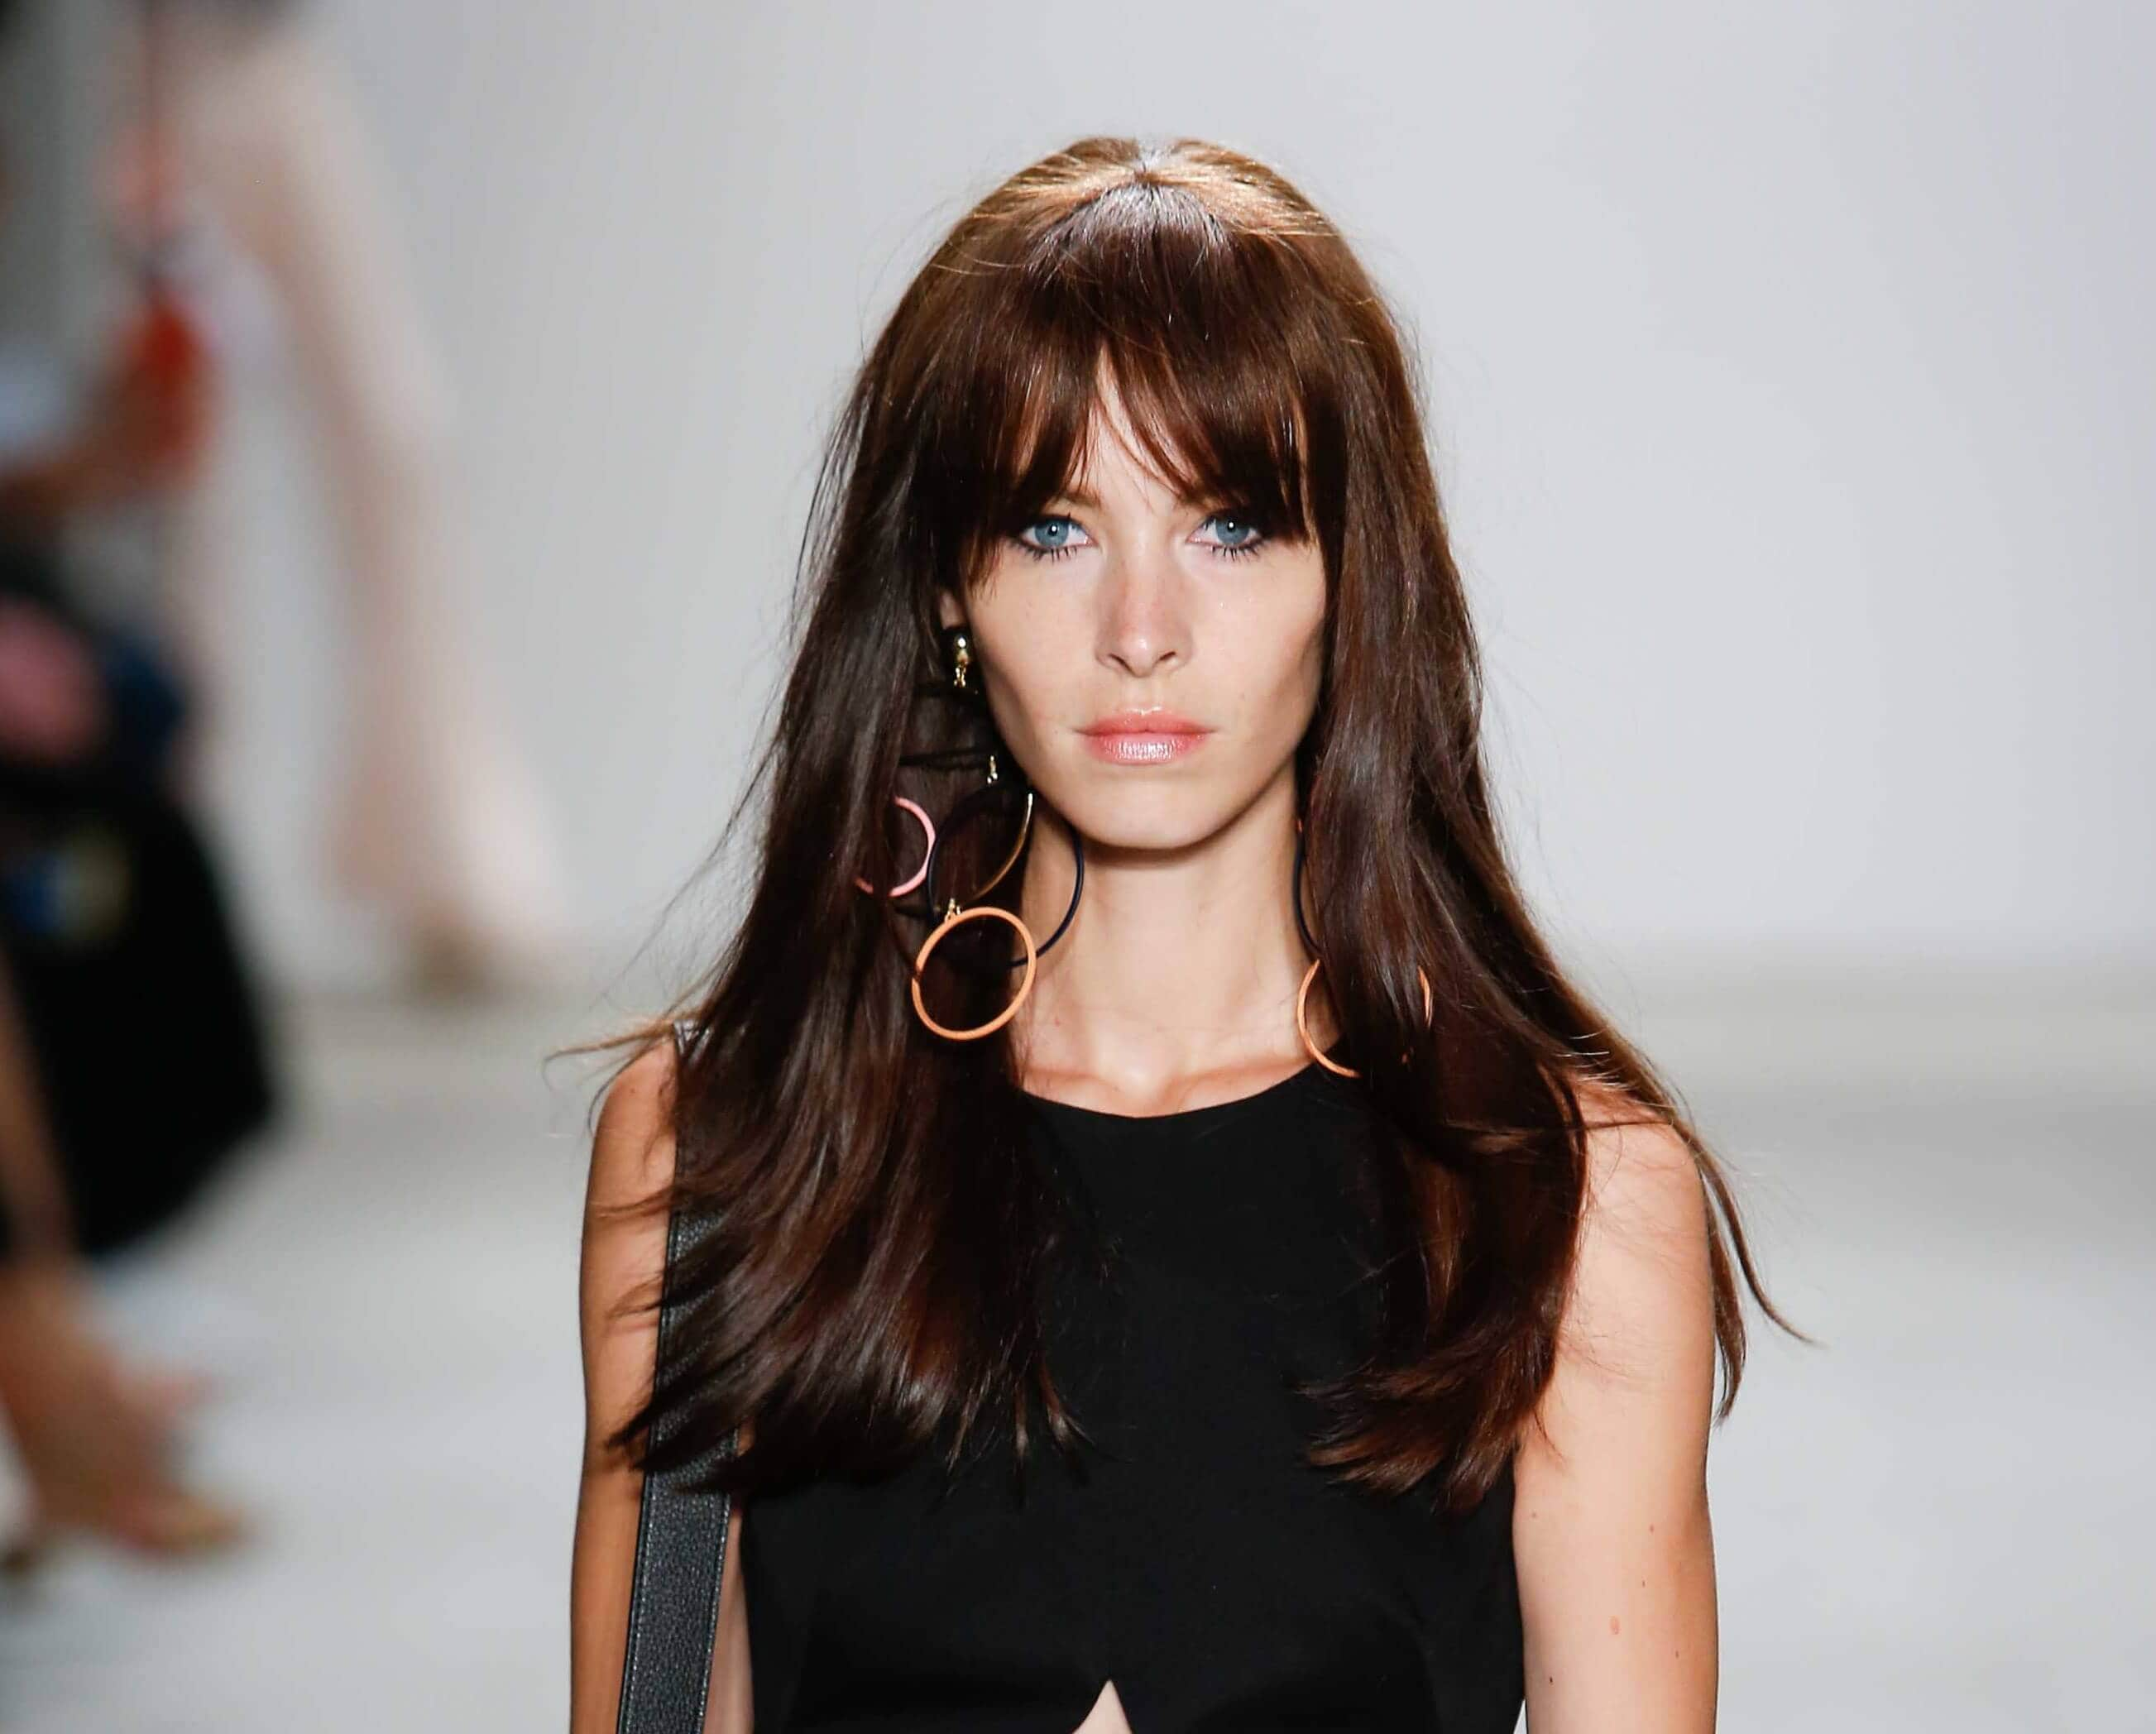 Woman with mid length brown hair with a tinge of red